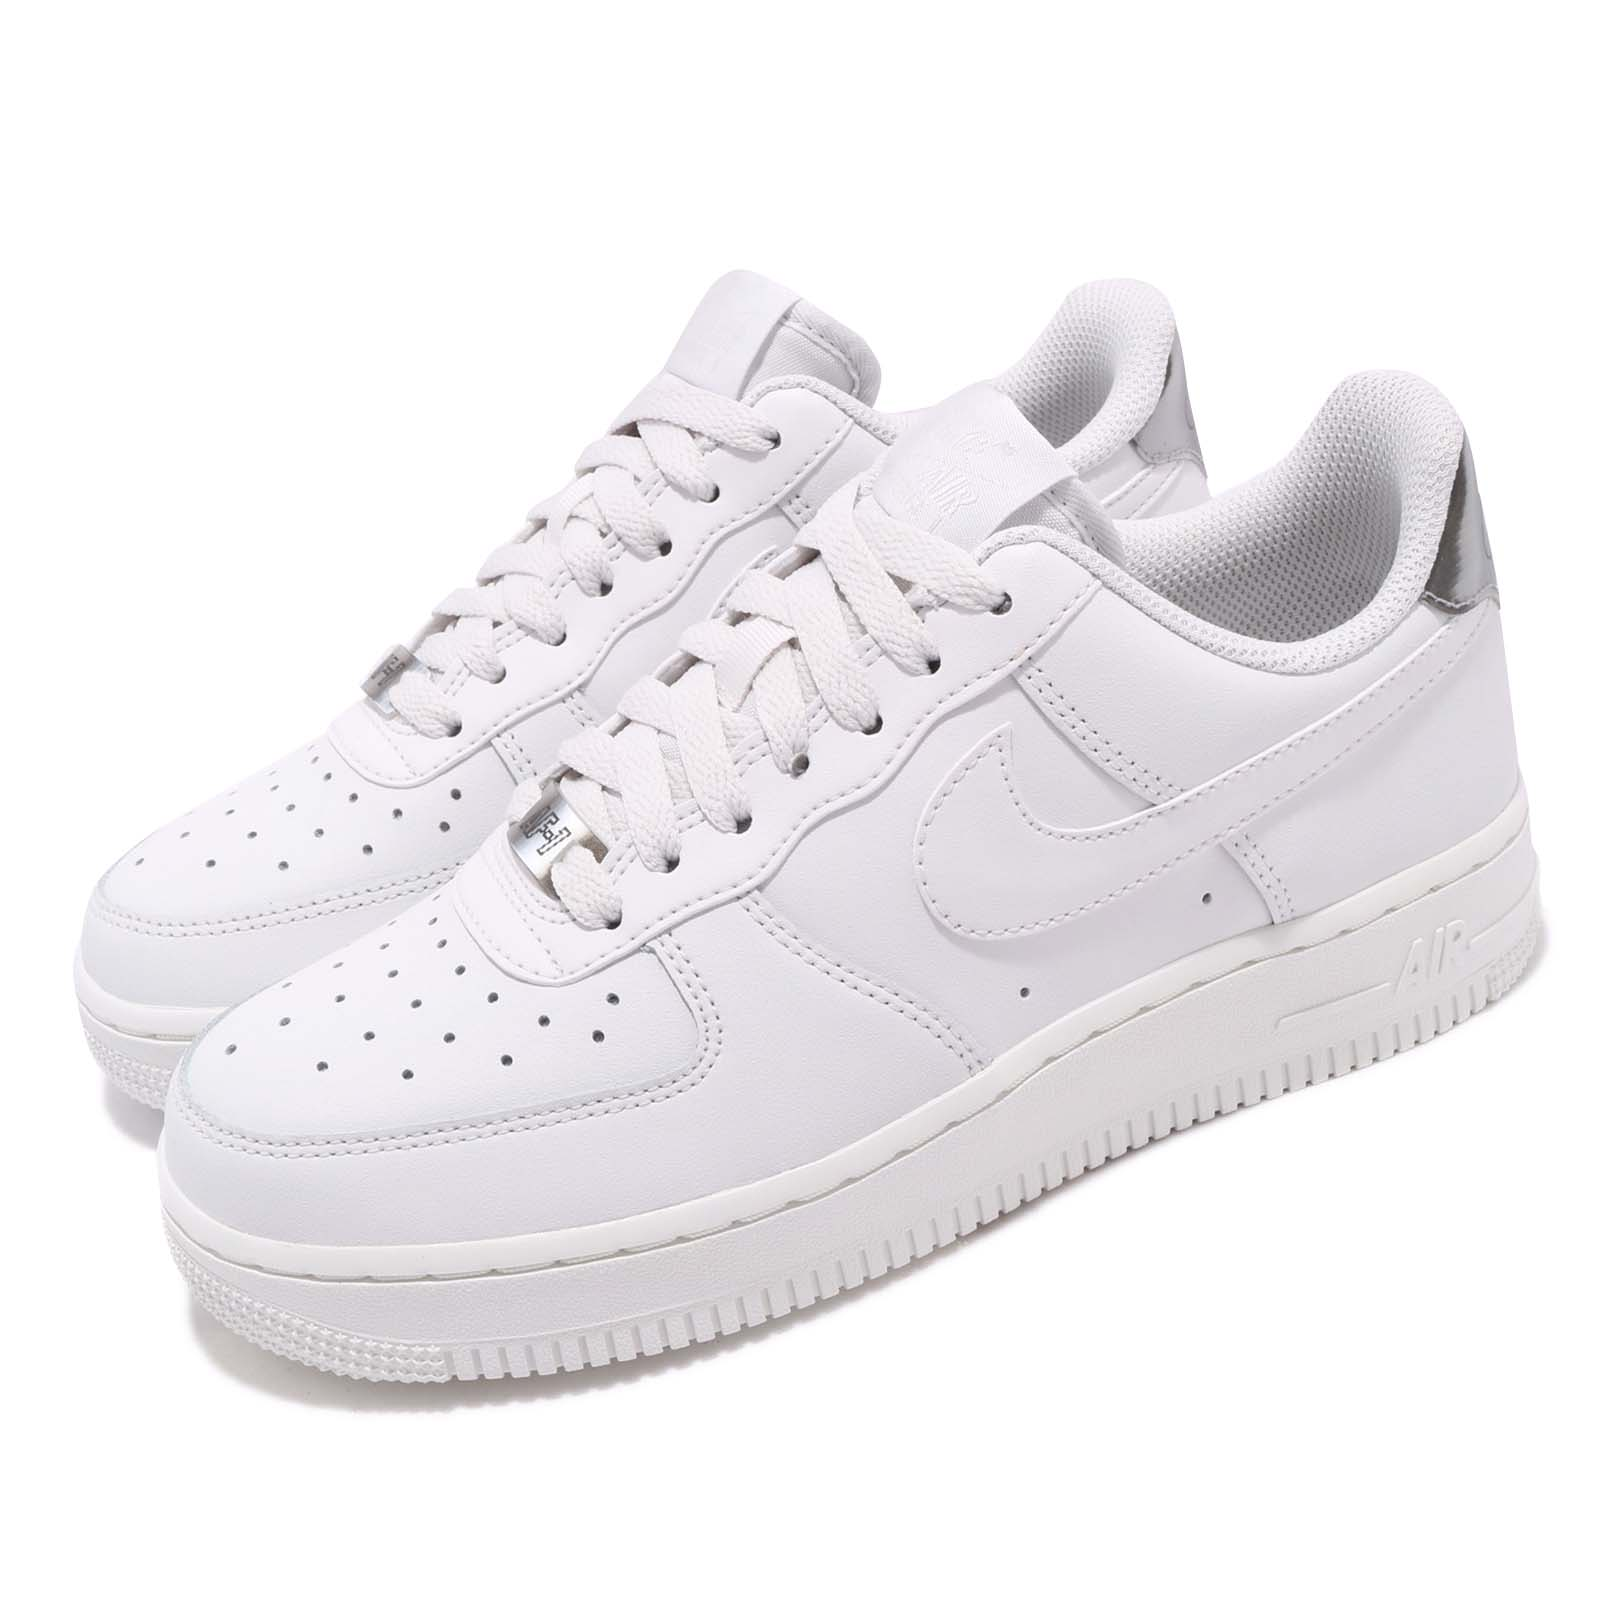 Nike 休閒鞋 Air Force 1 07 女鞋 AO2132-003